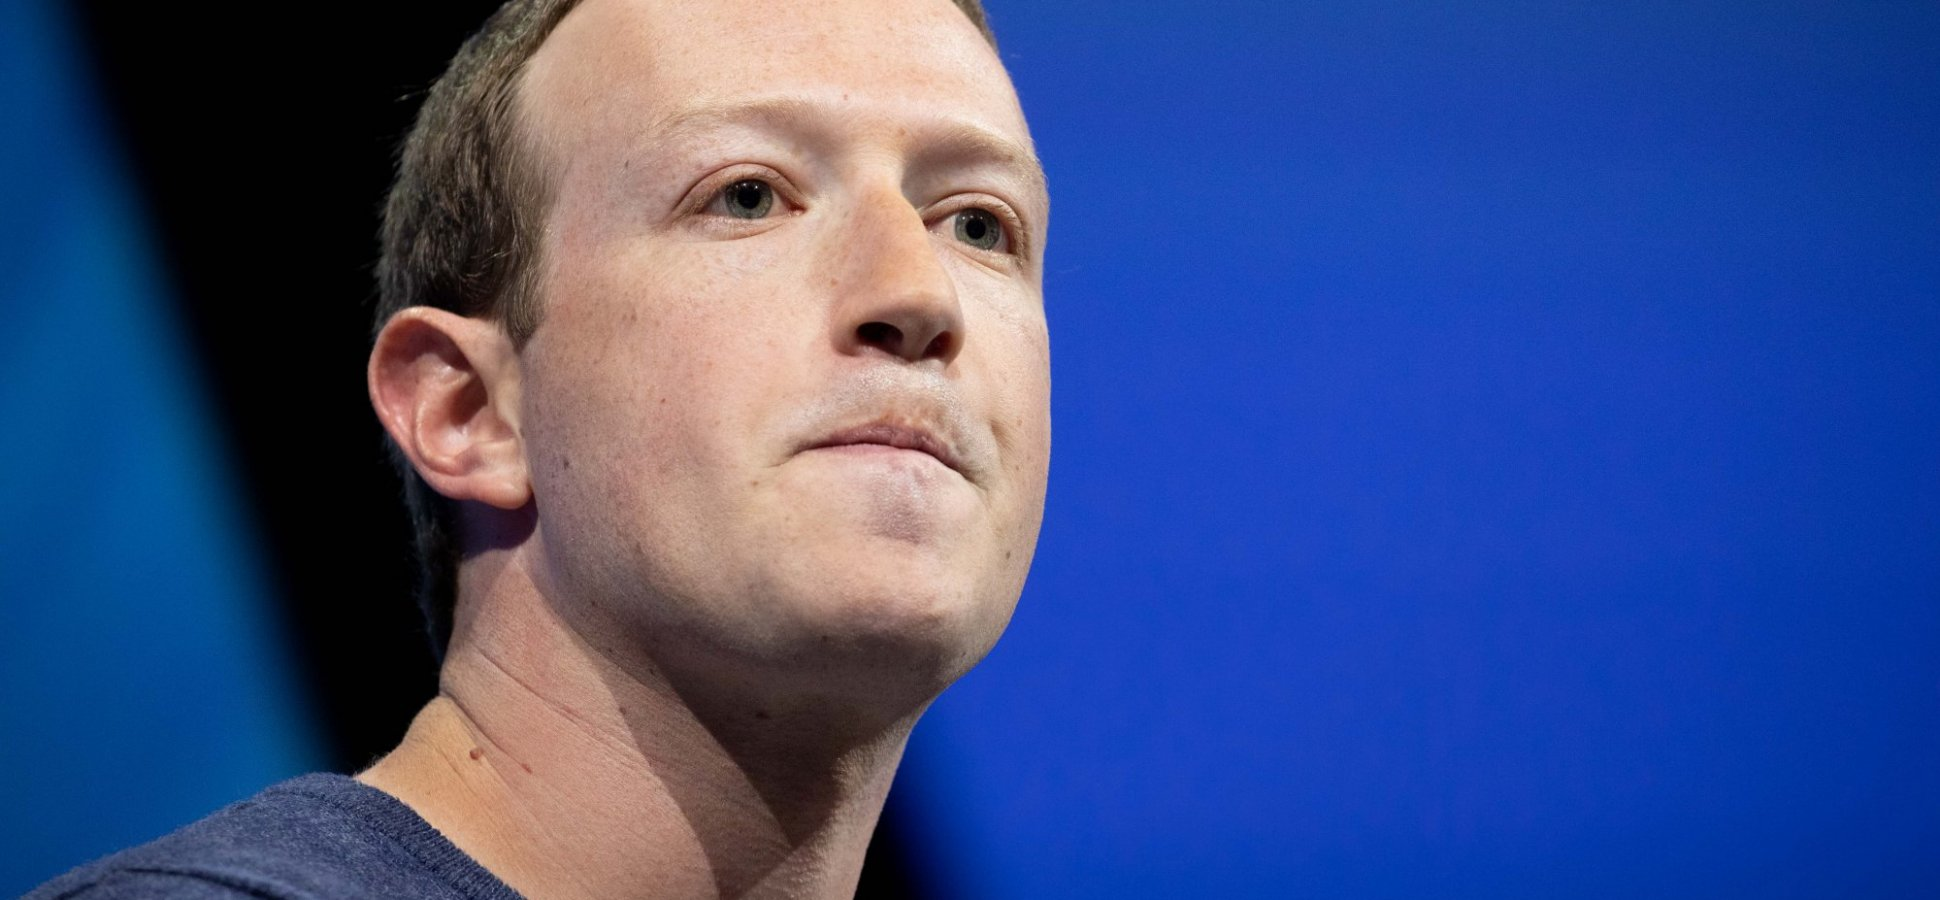 Facebook's Getting Slammed for Data Practices, and Now It's Asking Banks for Your Financial Information